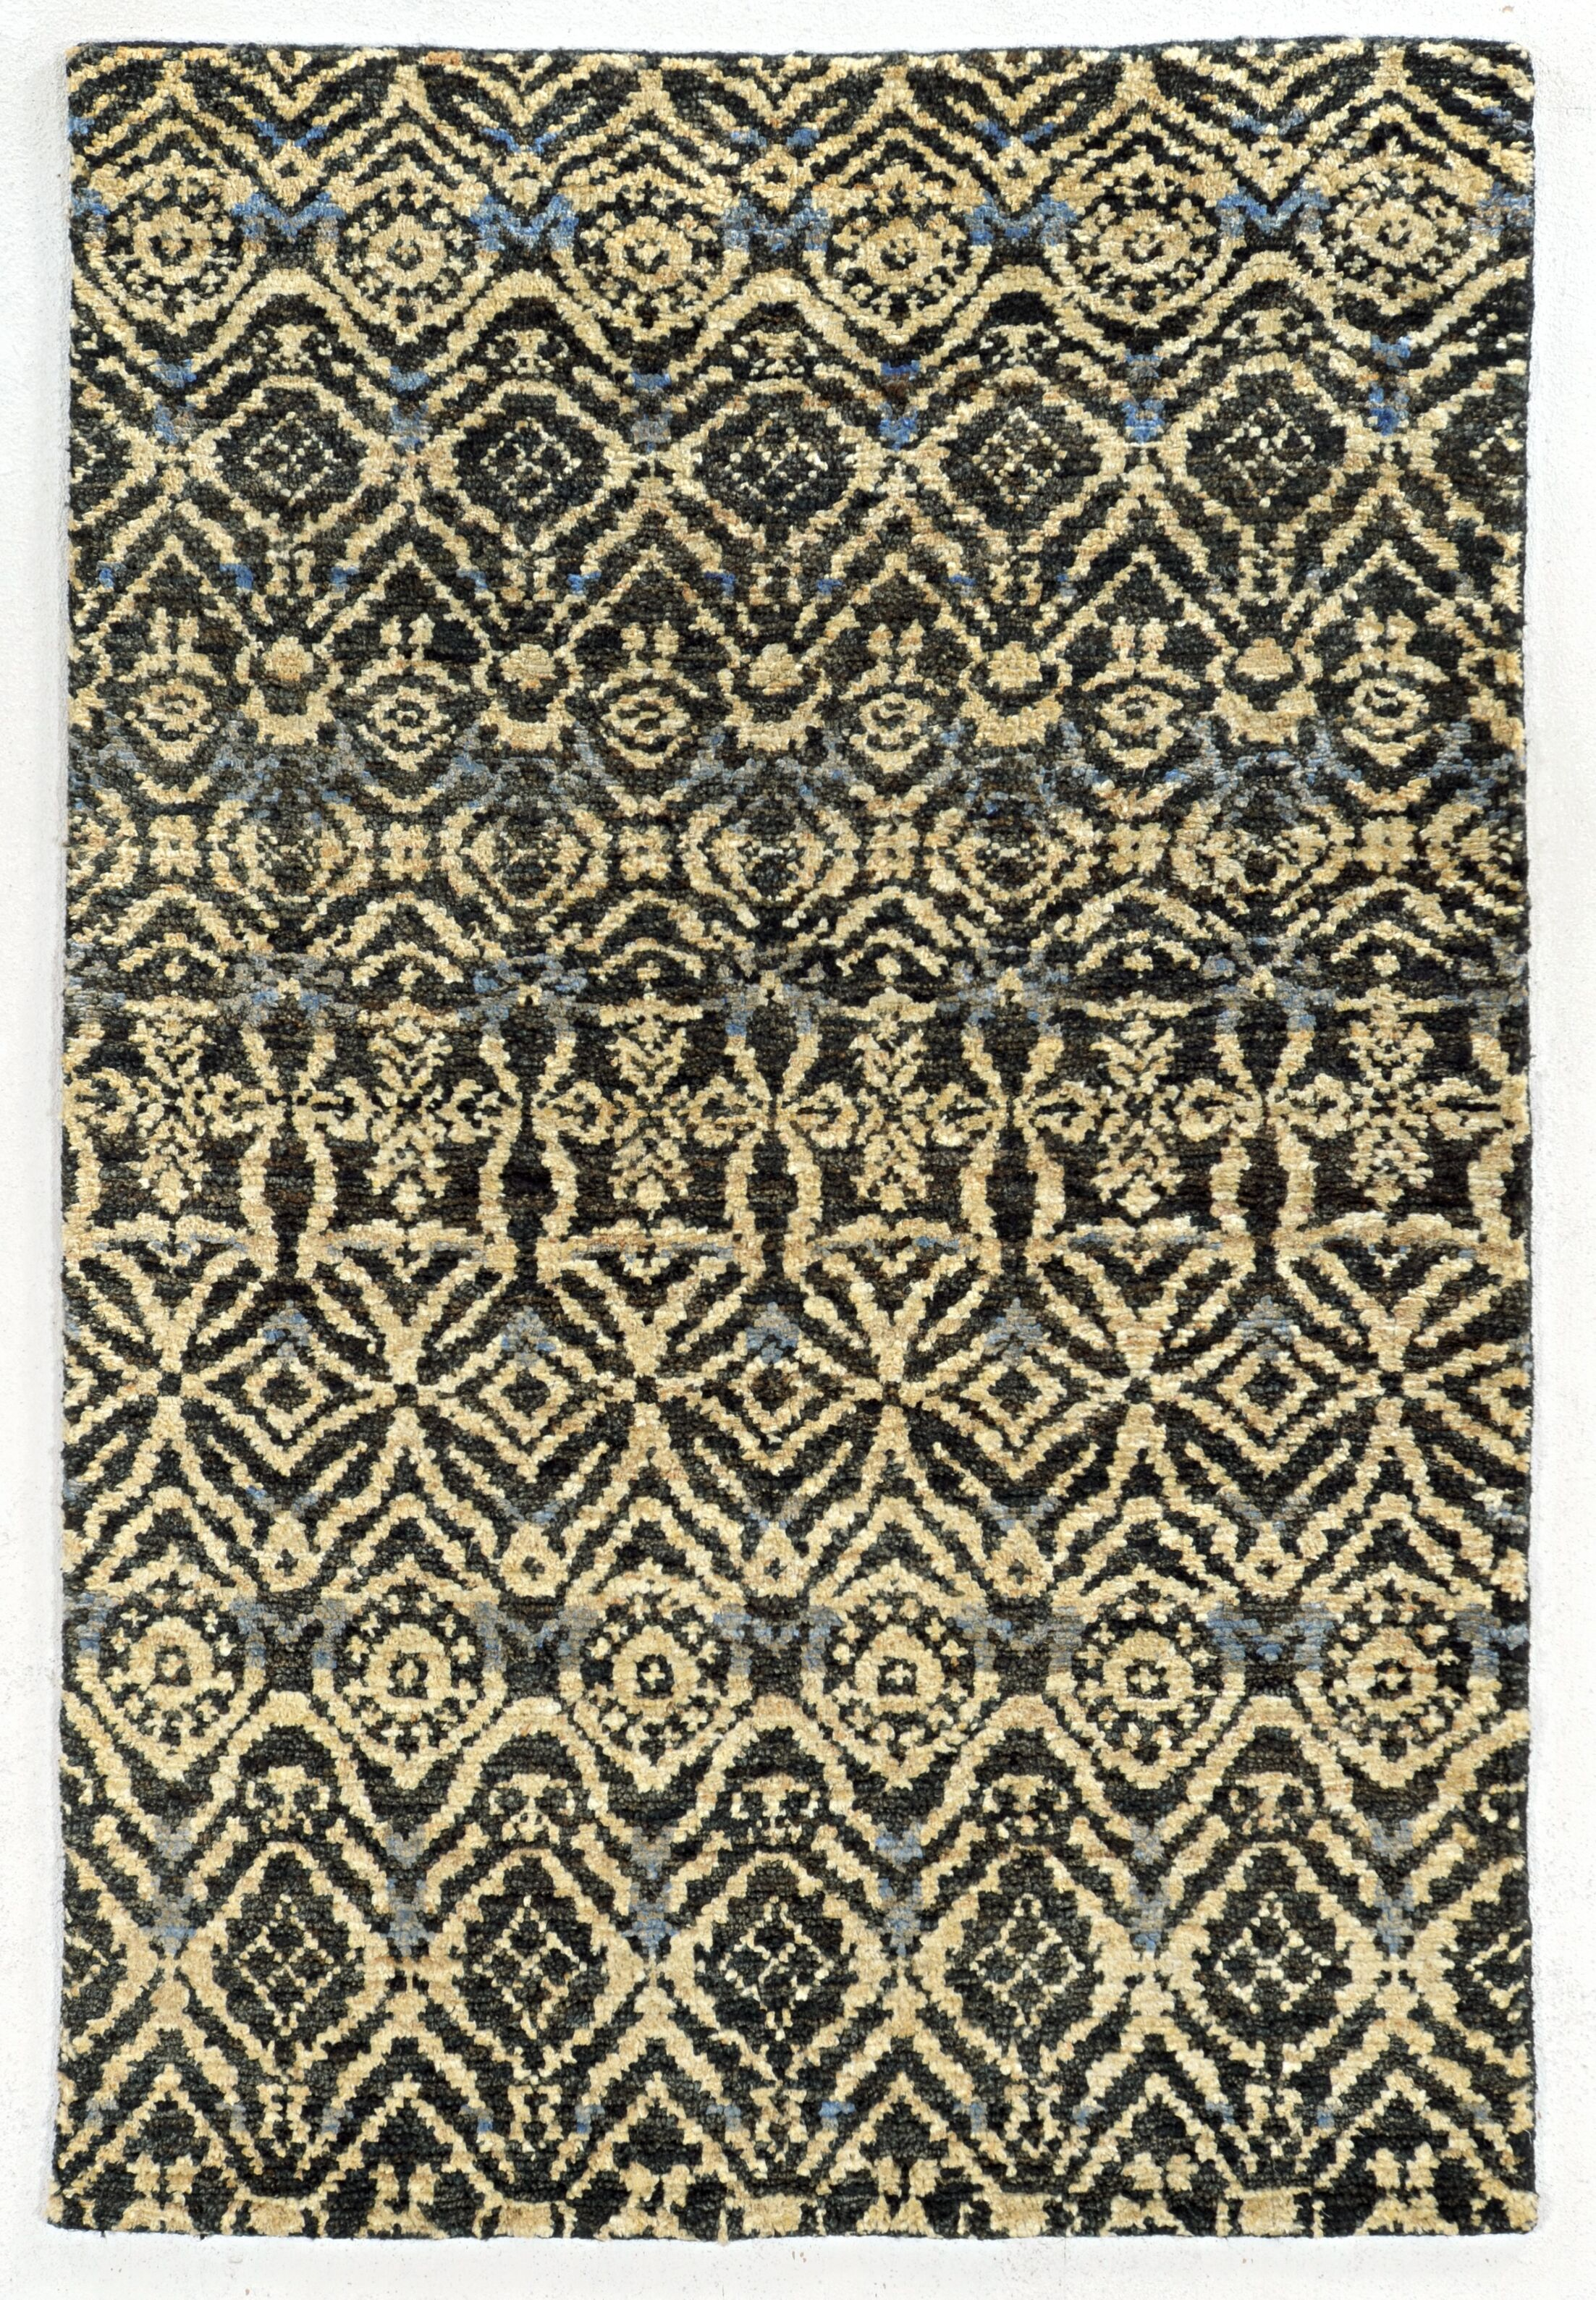 Tommy Bahama Ansley Black / Beige Geometric Rug Rug Size: Rectangle 3'6